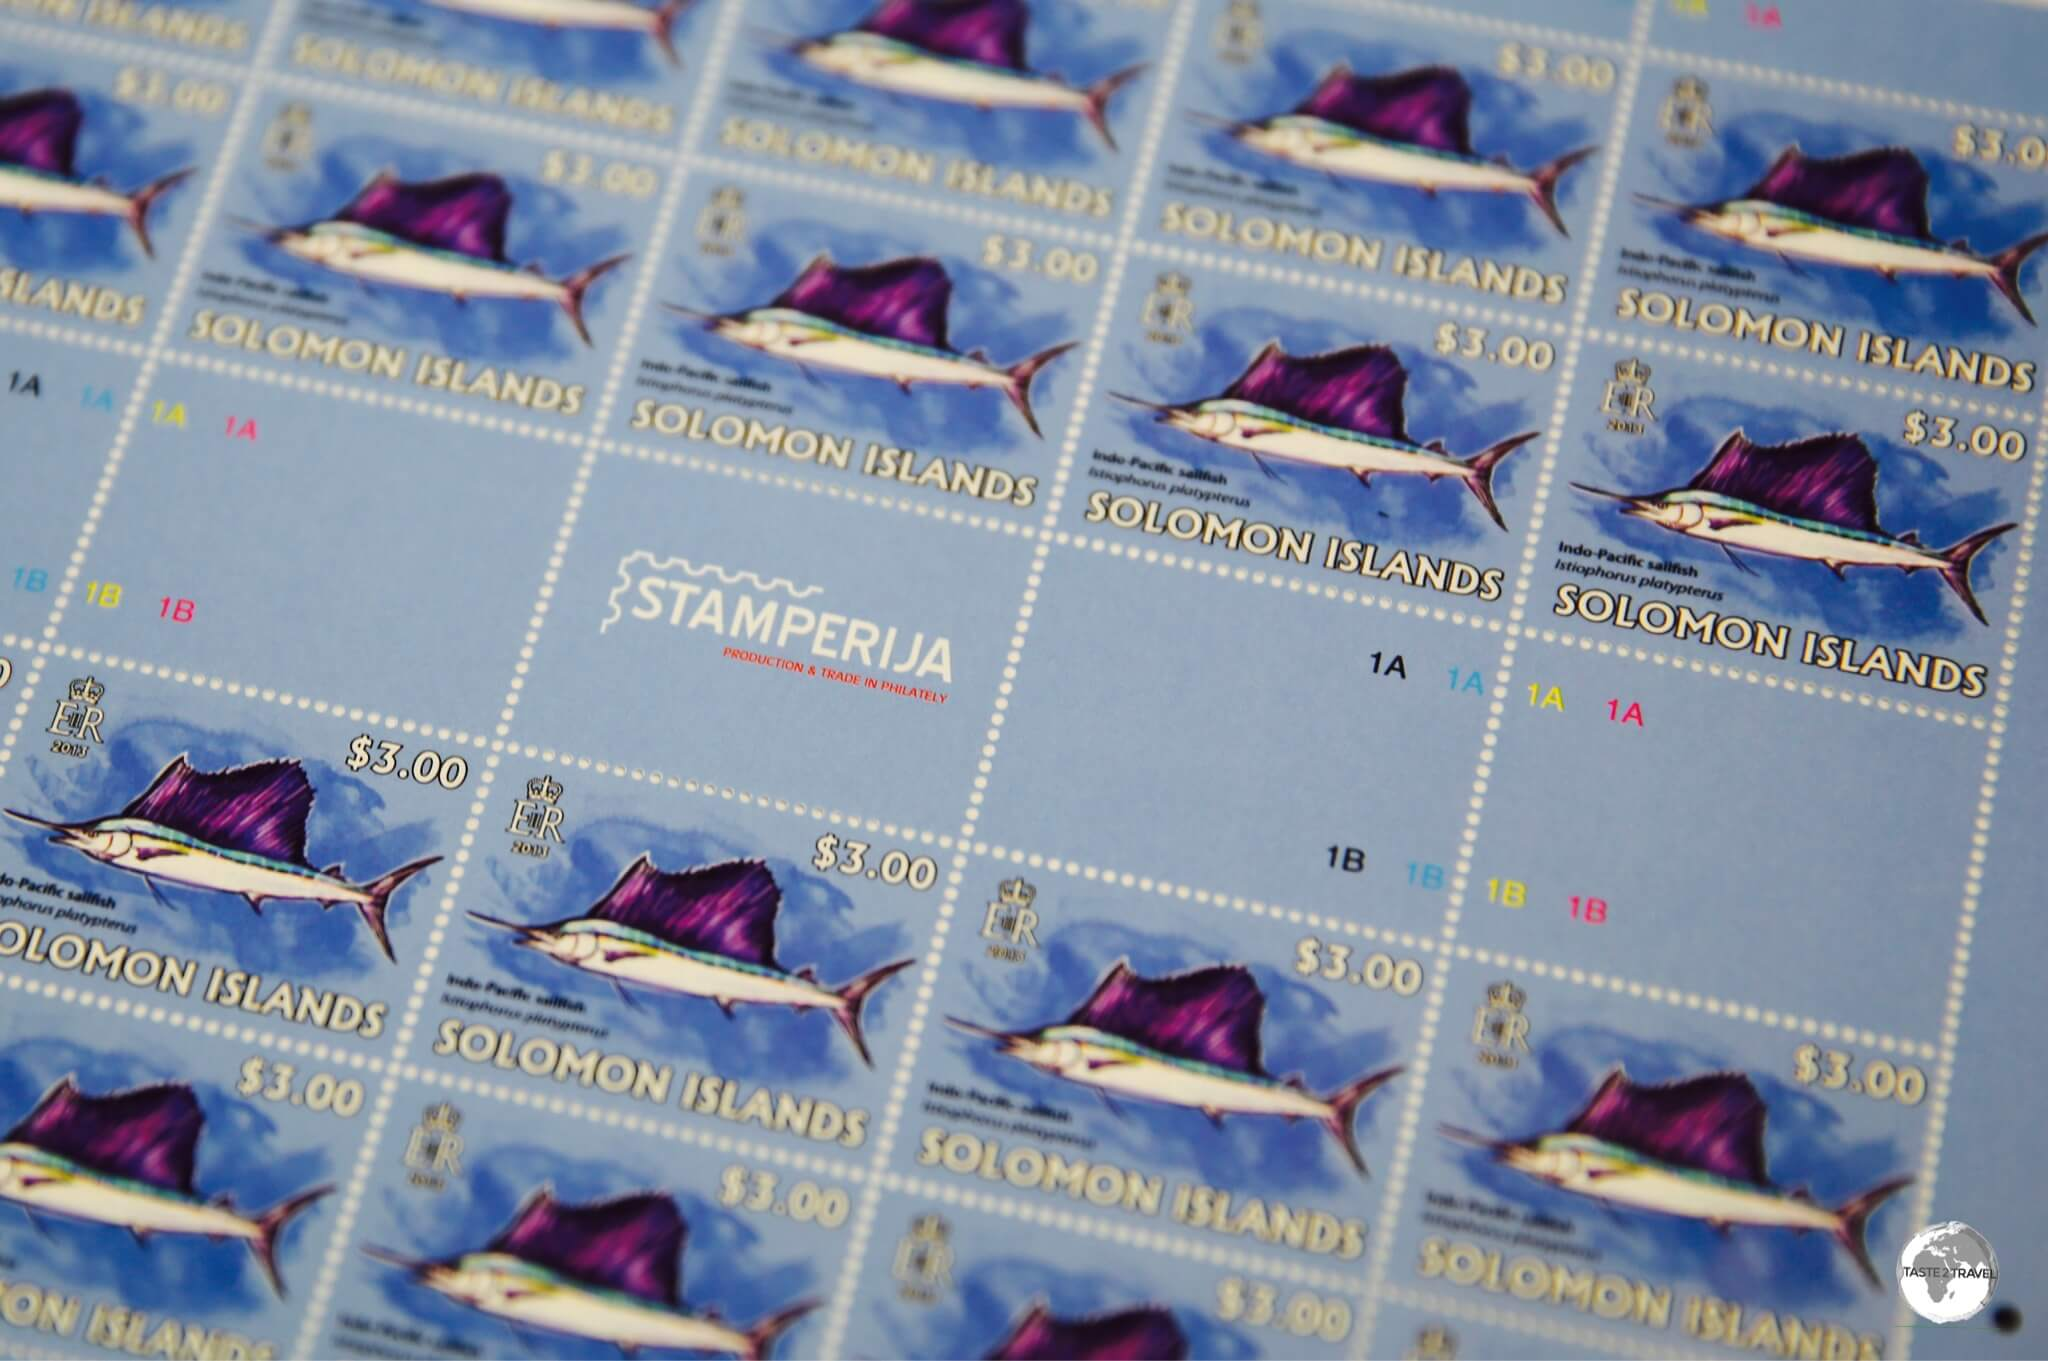 Solomon Islands stamps are produced in Lithuania by Stamperija and can be purchased from their online store.